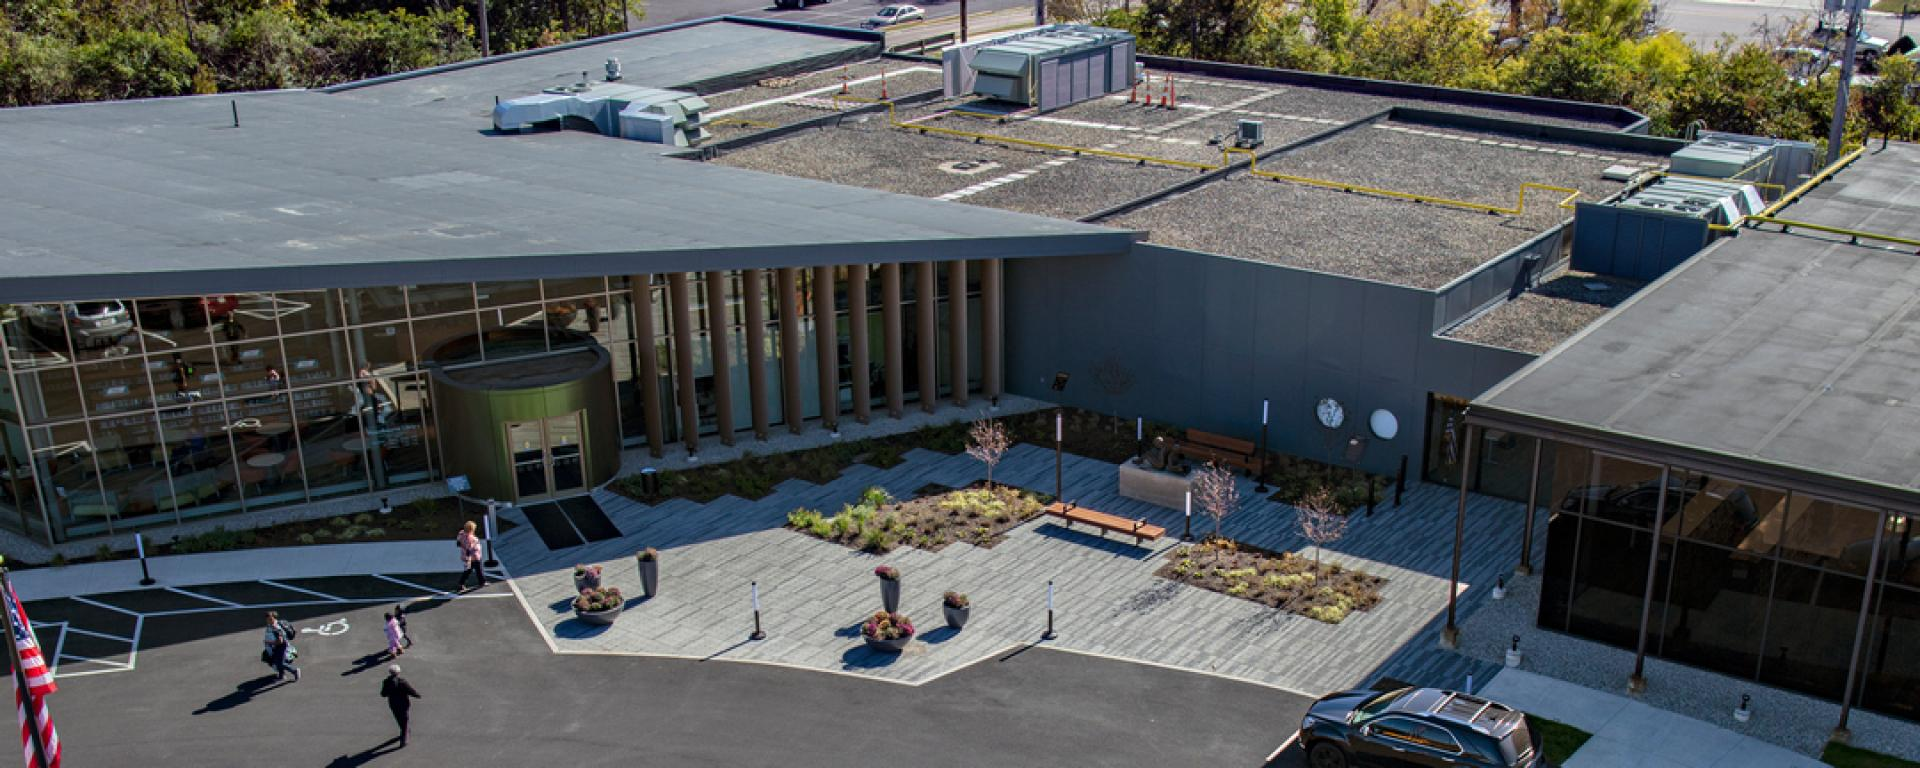 Aerial view of front entrance of Woodbourne Library